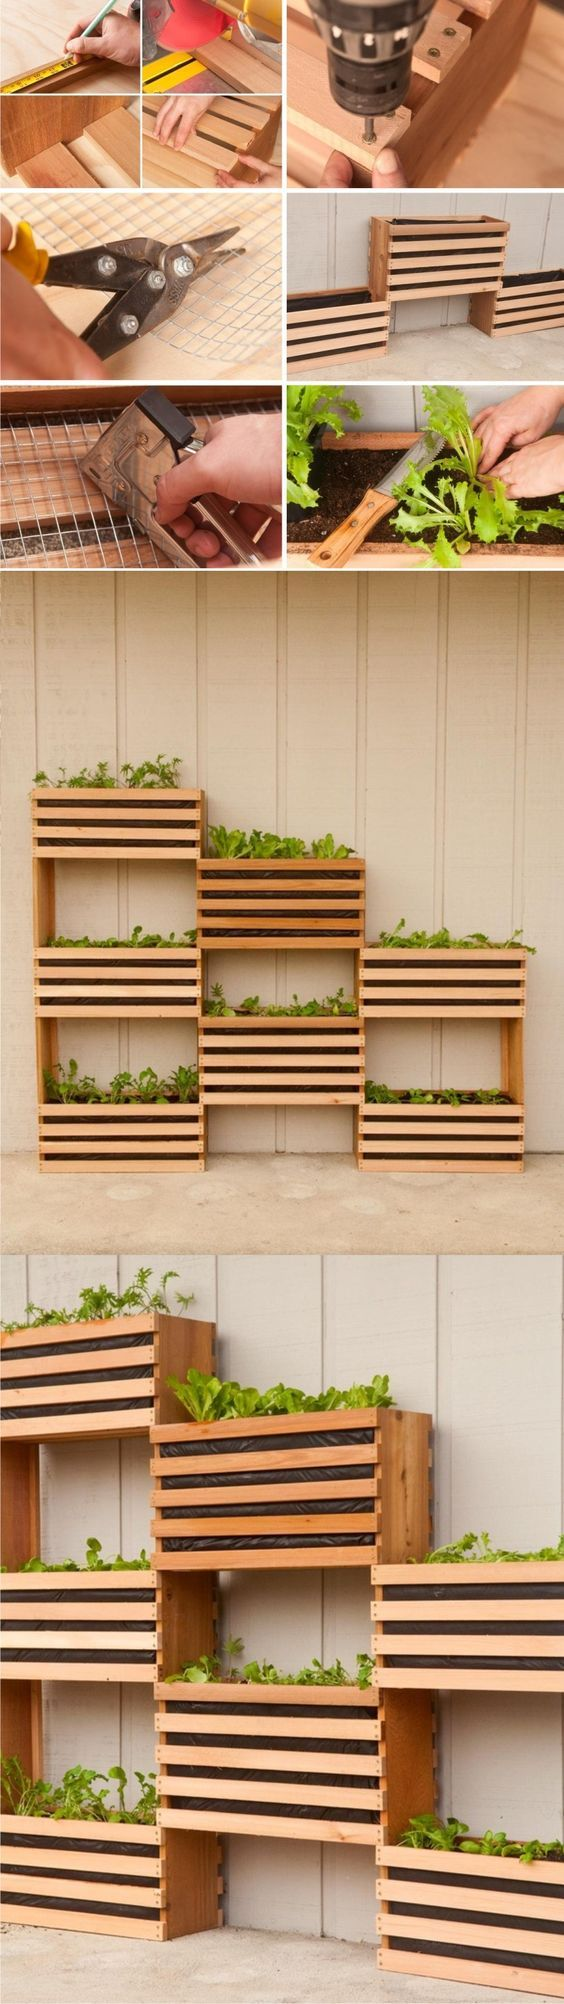 (in lieu of a space hogging greens/salad table) Space-Saving Vertical Vegetable Garden: